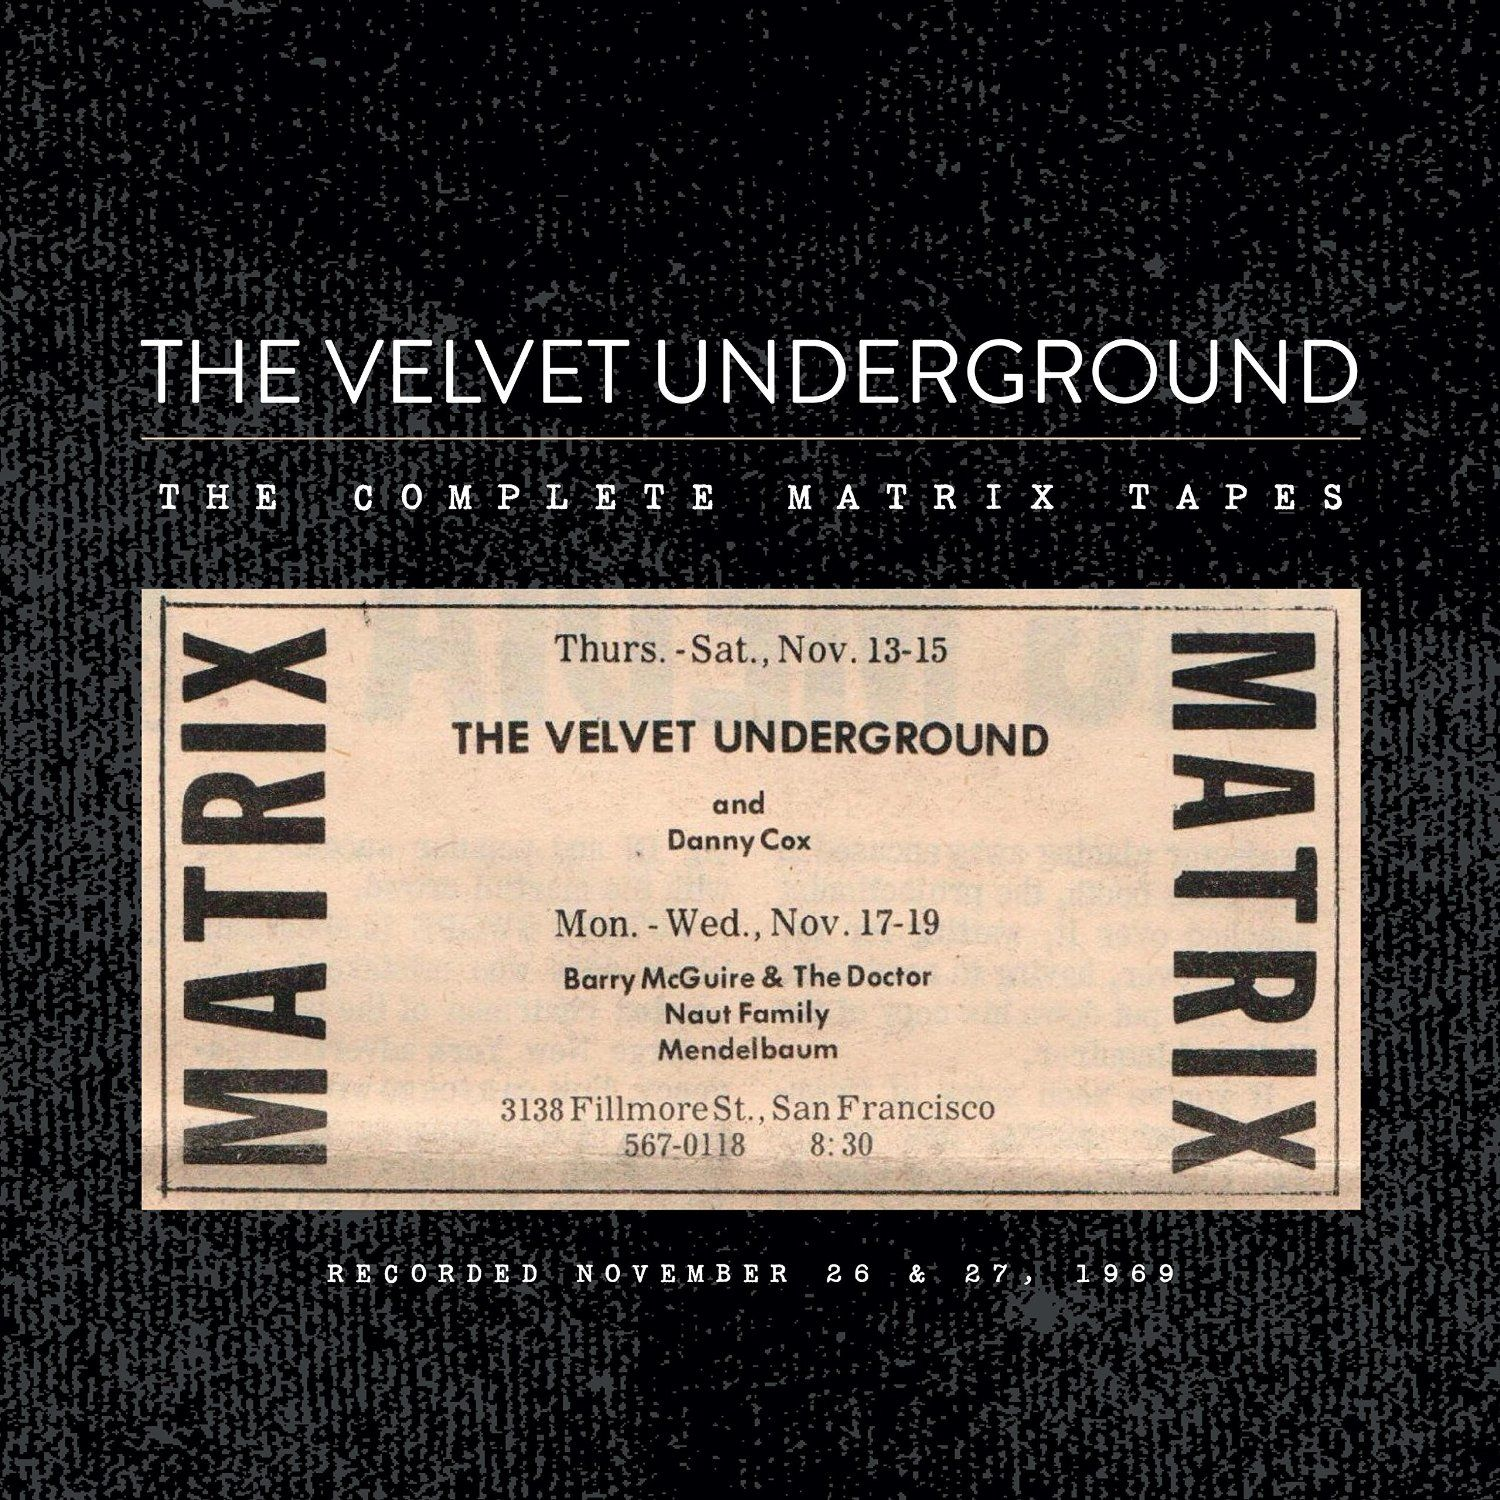 The Complete Matrix Tapes - The Velvet Underground